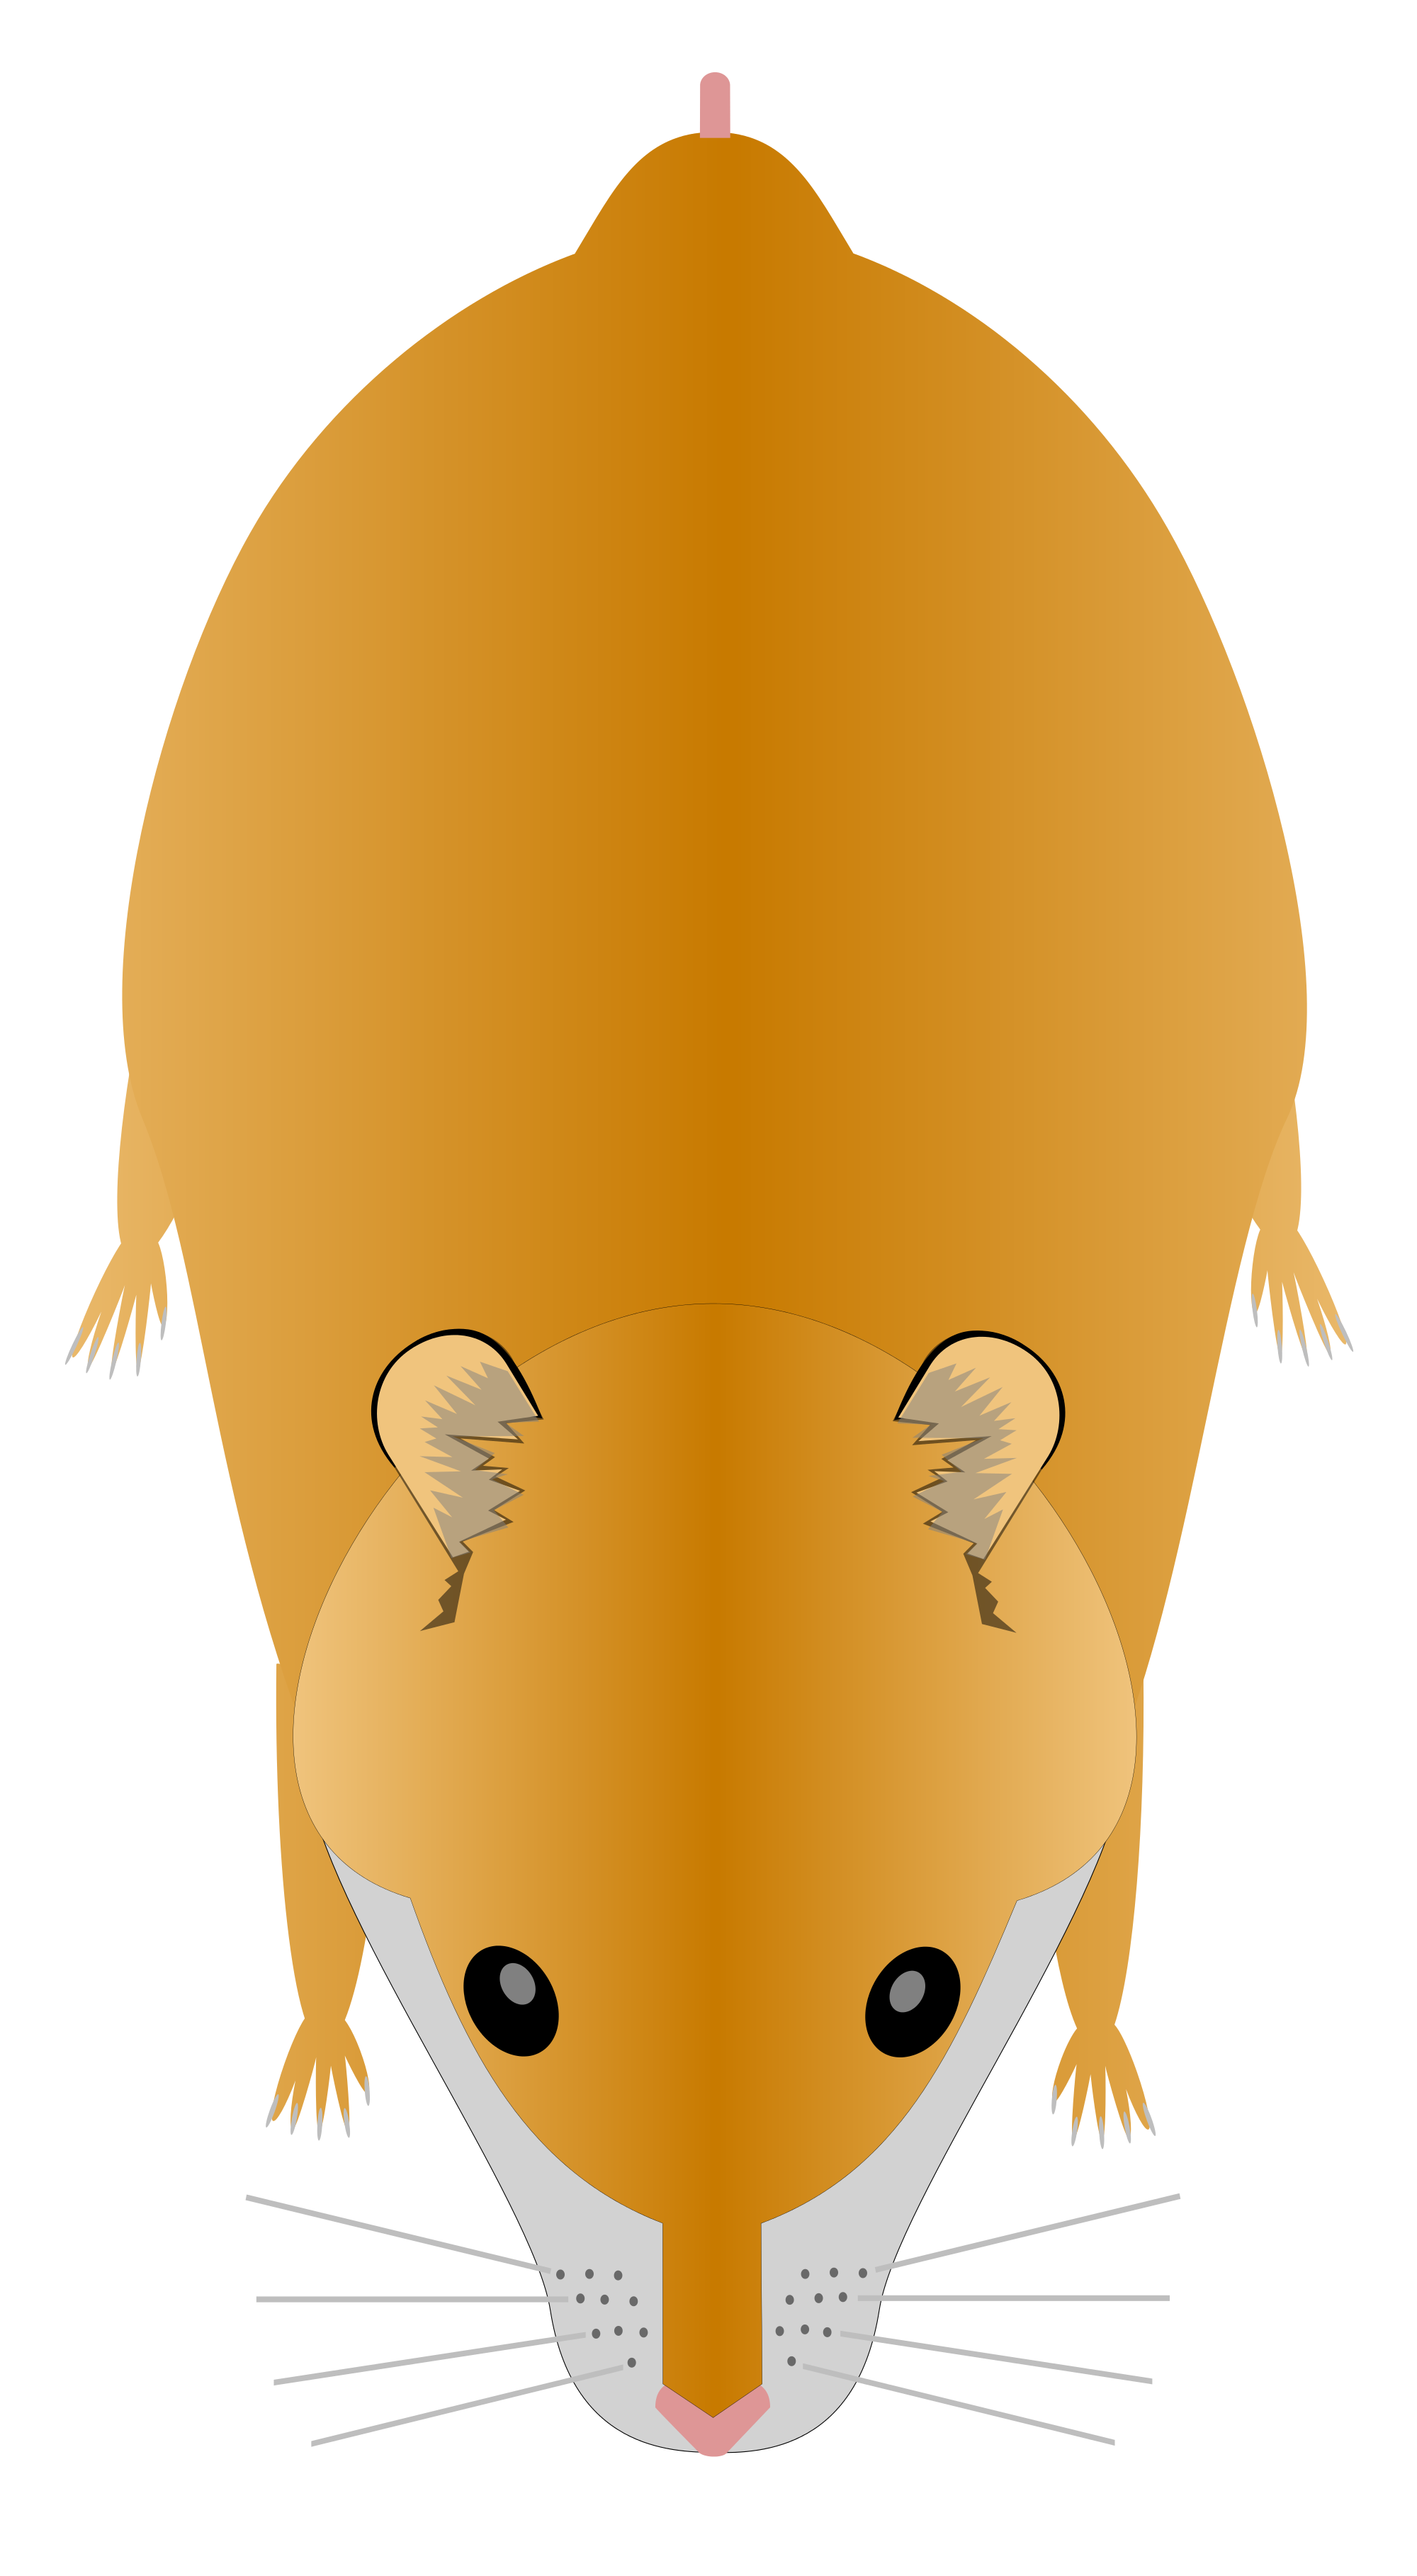 Hamster svg #8, Download drawings